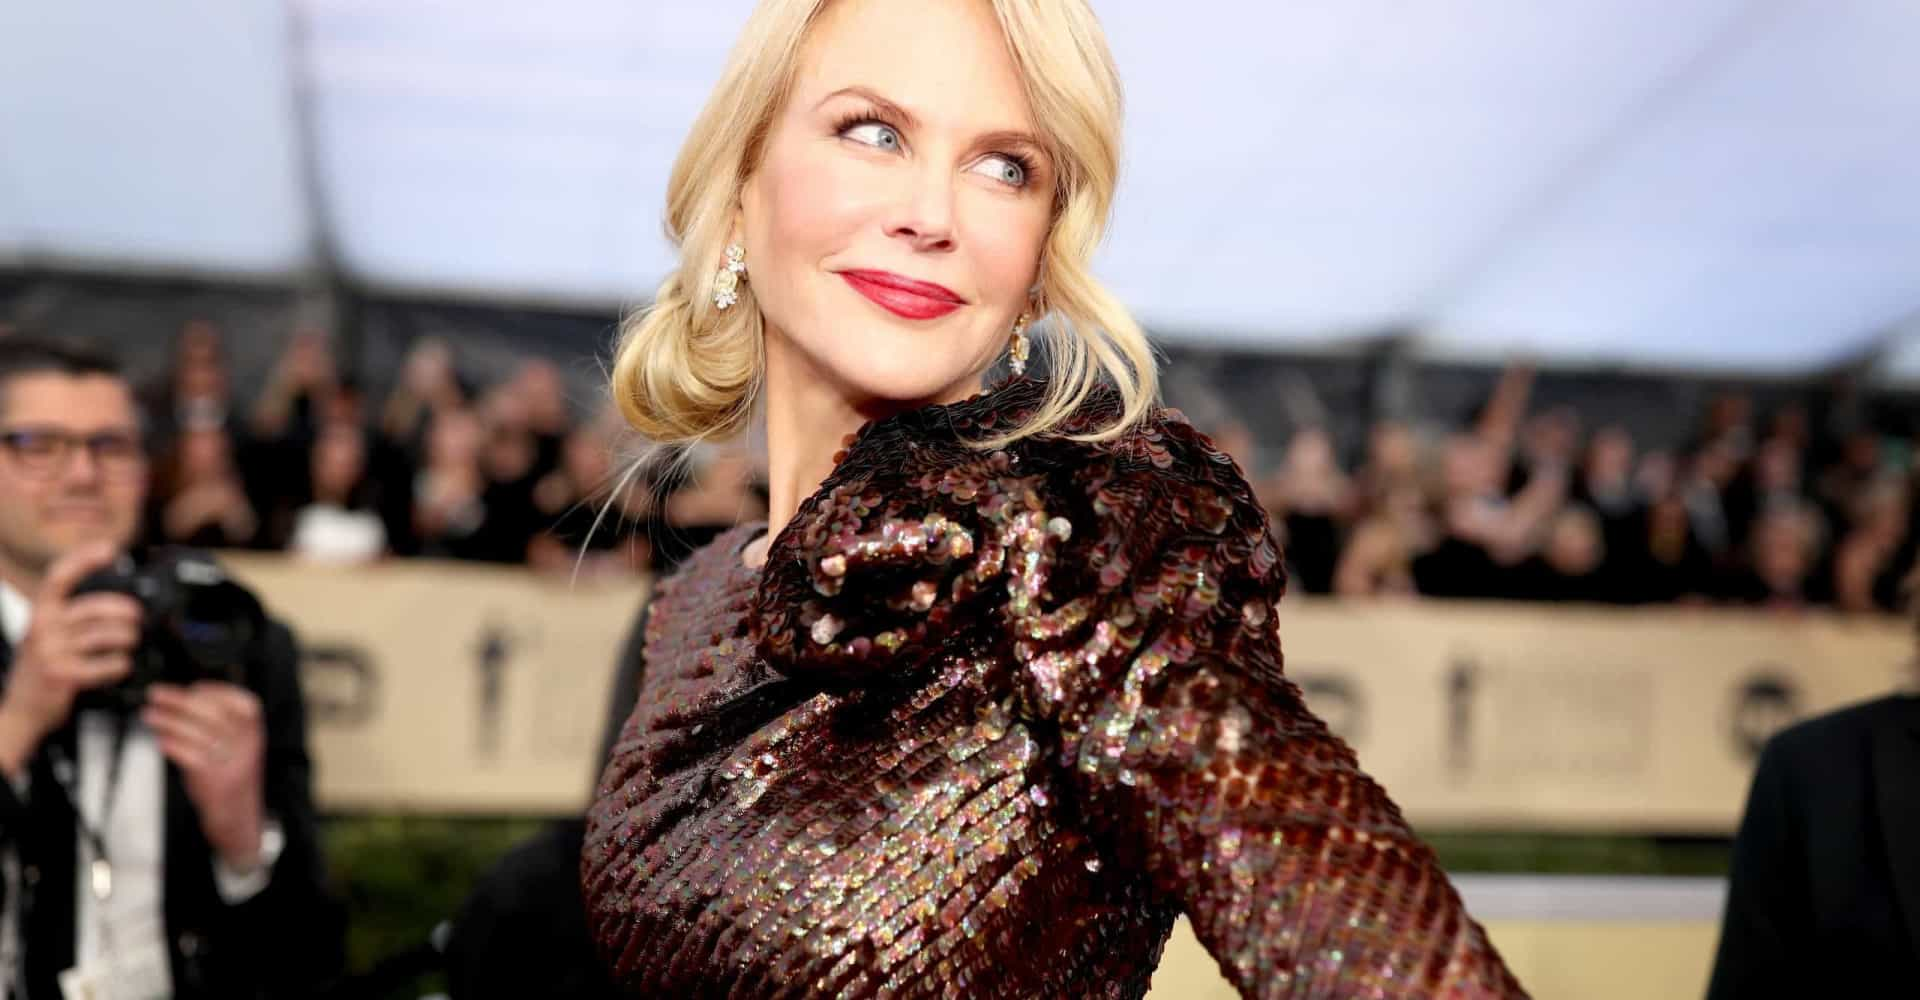 Queen of Fashion: Nicole Kidman's style through the years